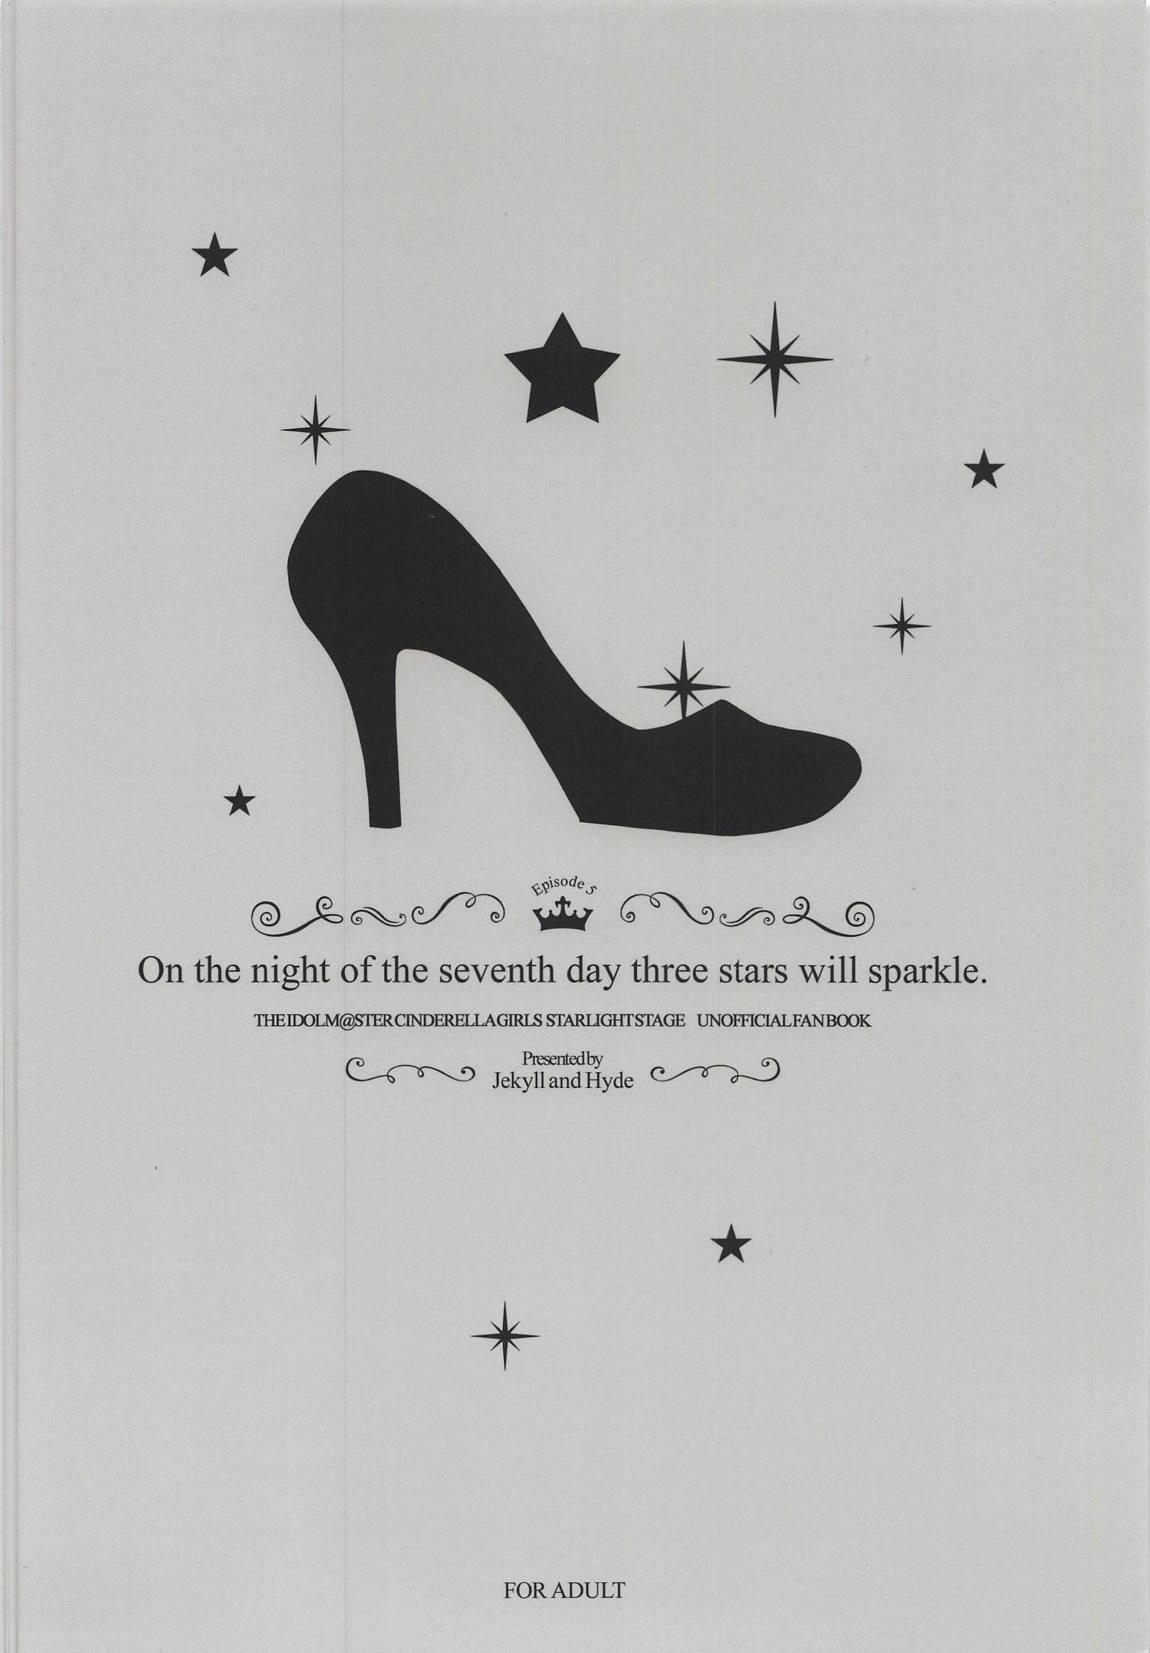 On the night of the seventh day three stars will sparkle. 21